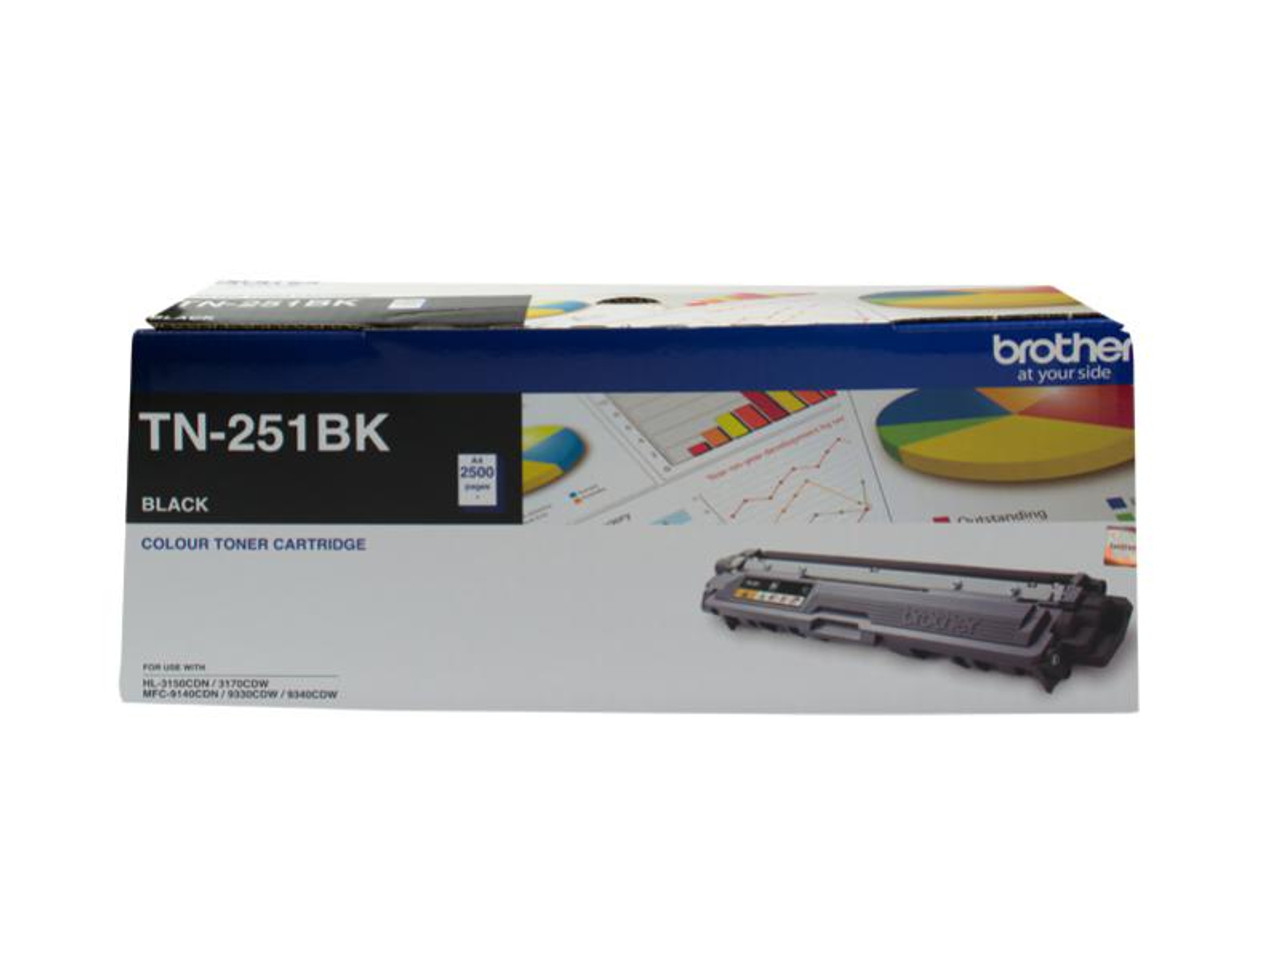 Image for Brother TN-251BK Black Toner Cartridge - Up to 2,500 Pages CX Computer Superstore